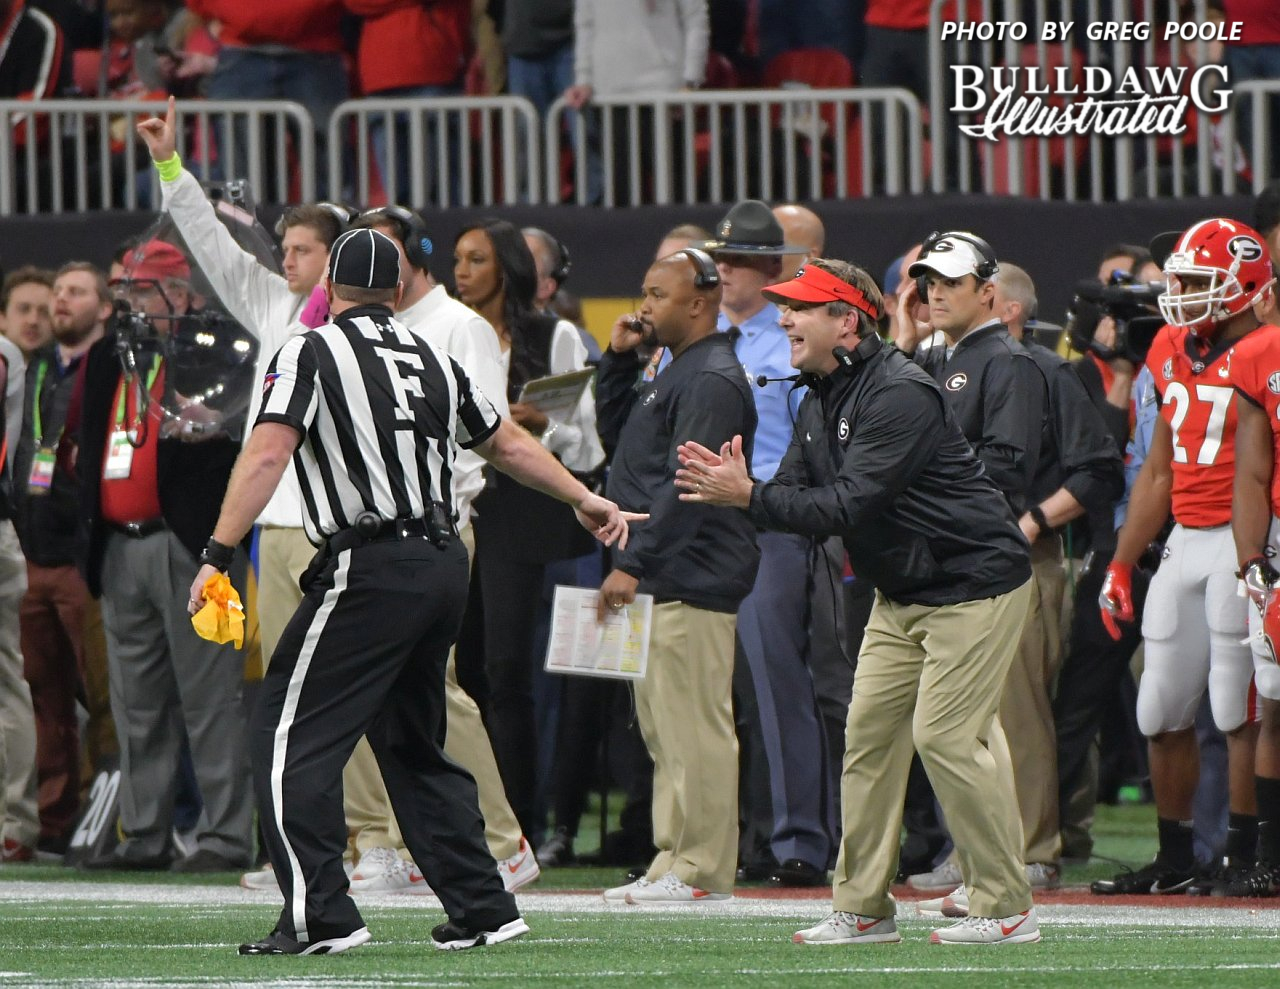 Kirby Smart pleads his case with a Big 10 referee during the first-half of the National Championship game. - Mercedes-Benz Stadium, Atlanta, GA - Monday, Jan. 8, 2018